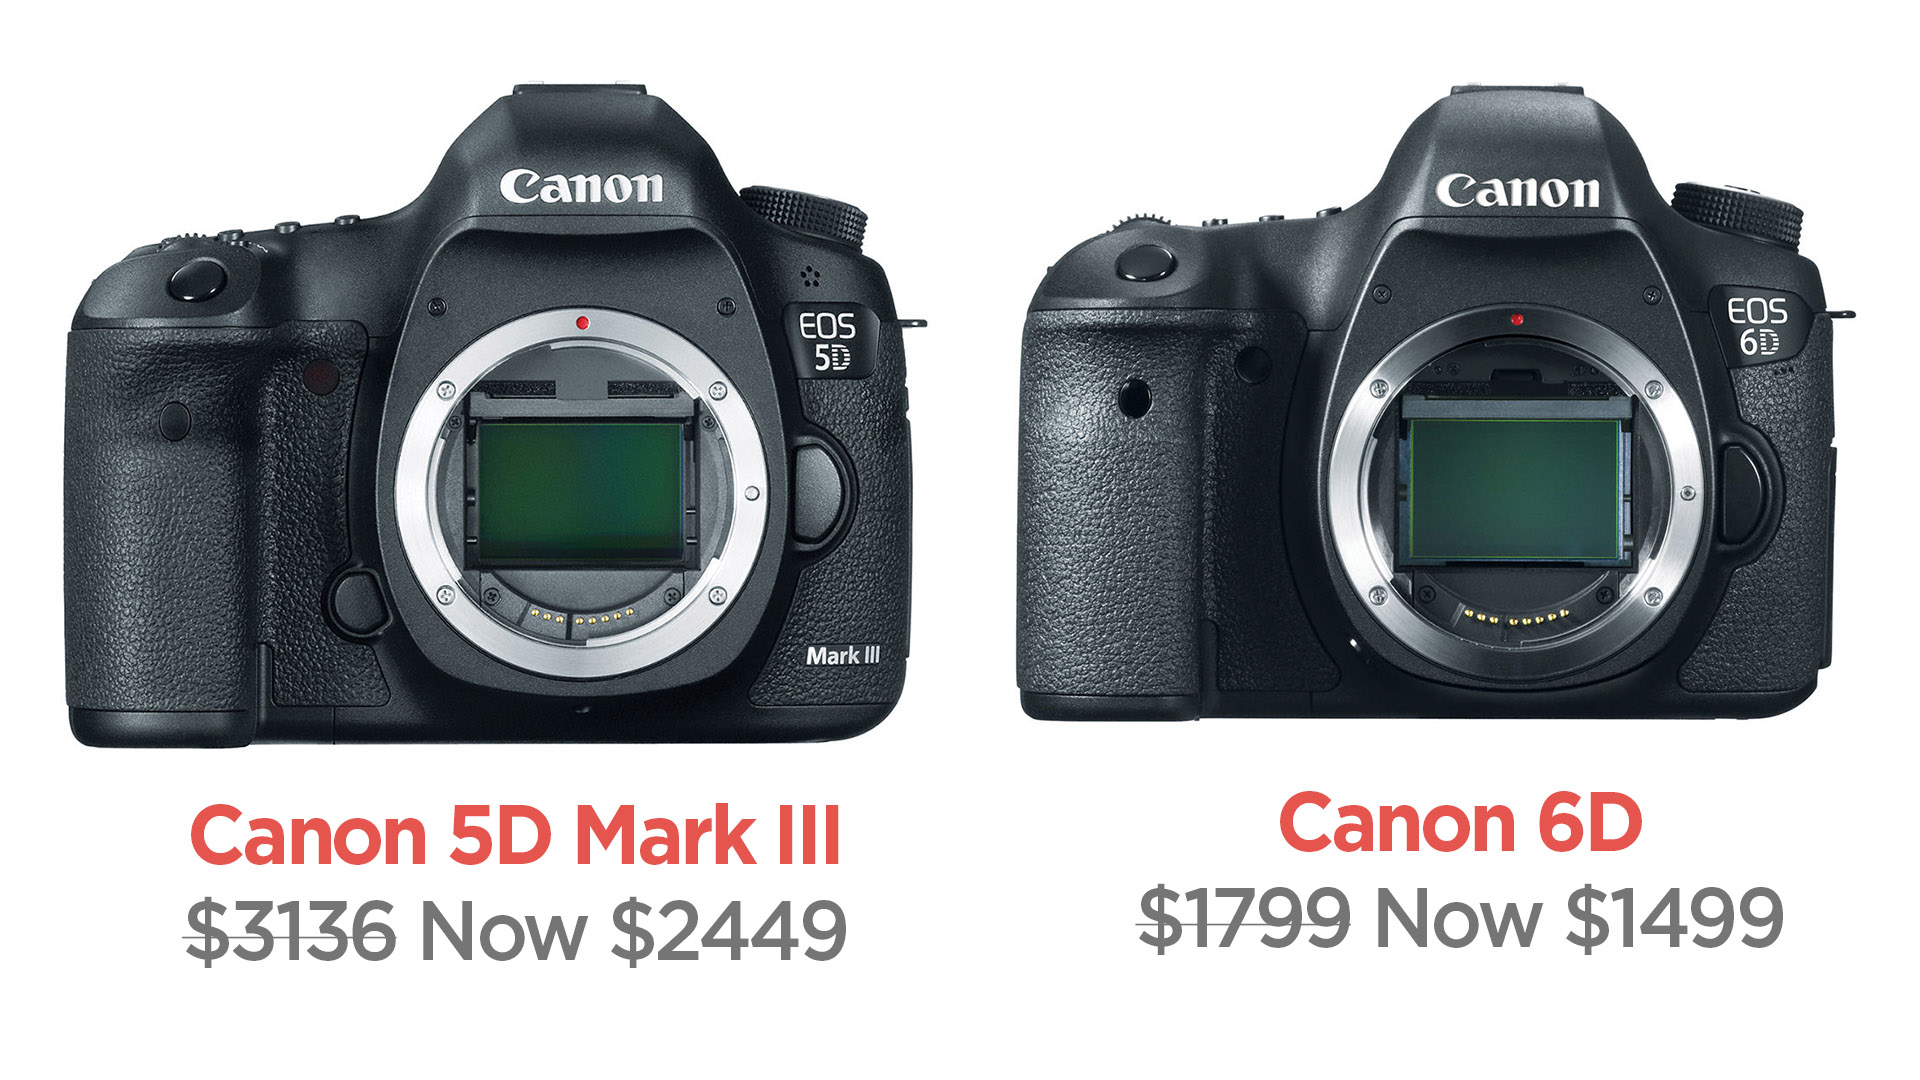 Save Big on the Canon 5D Mark III and 6D